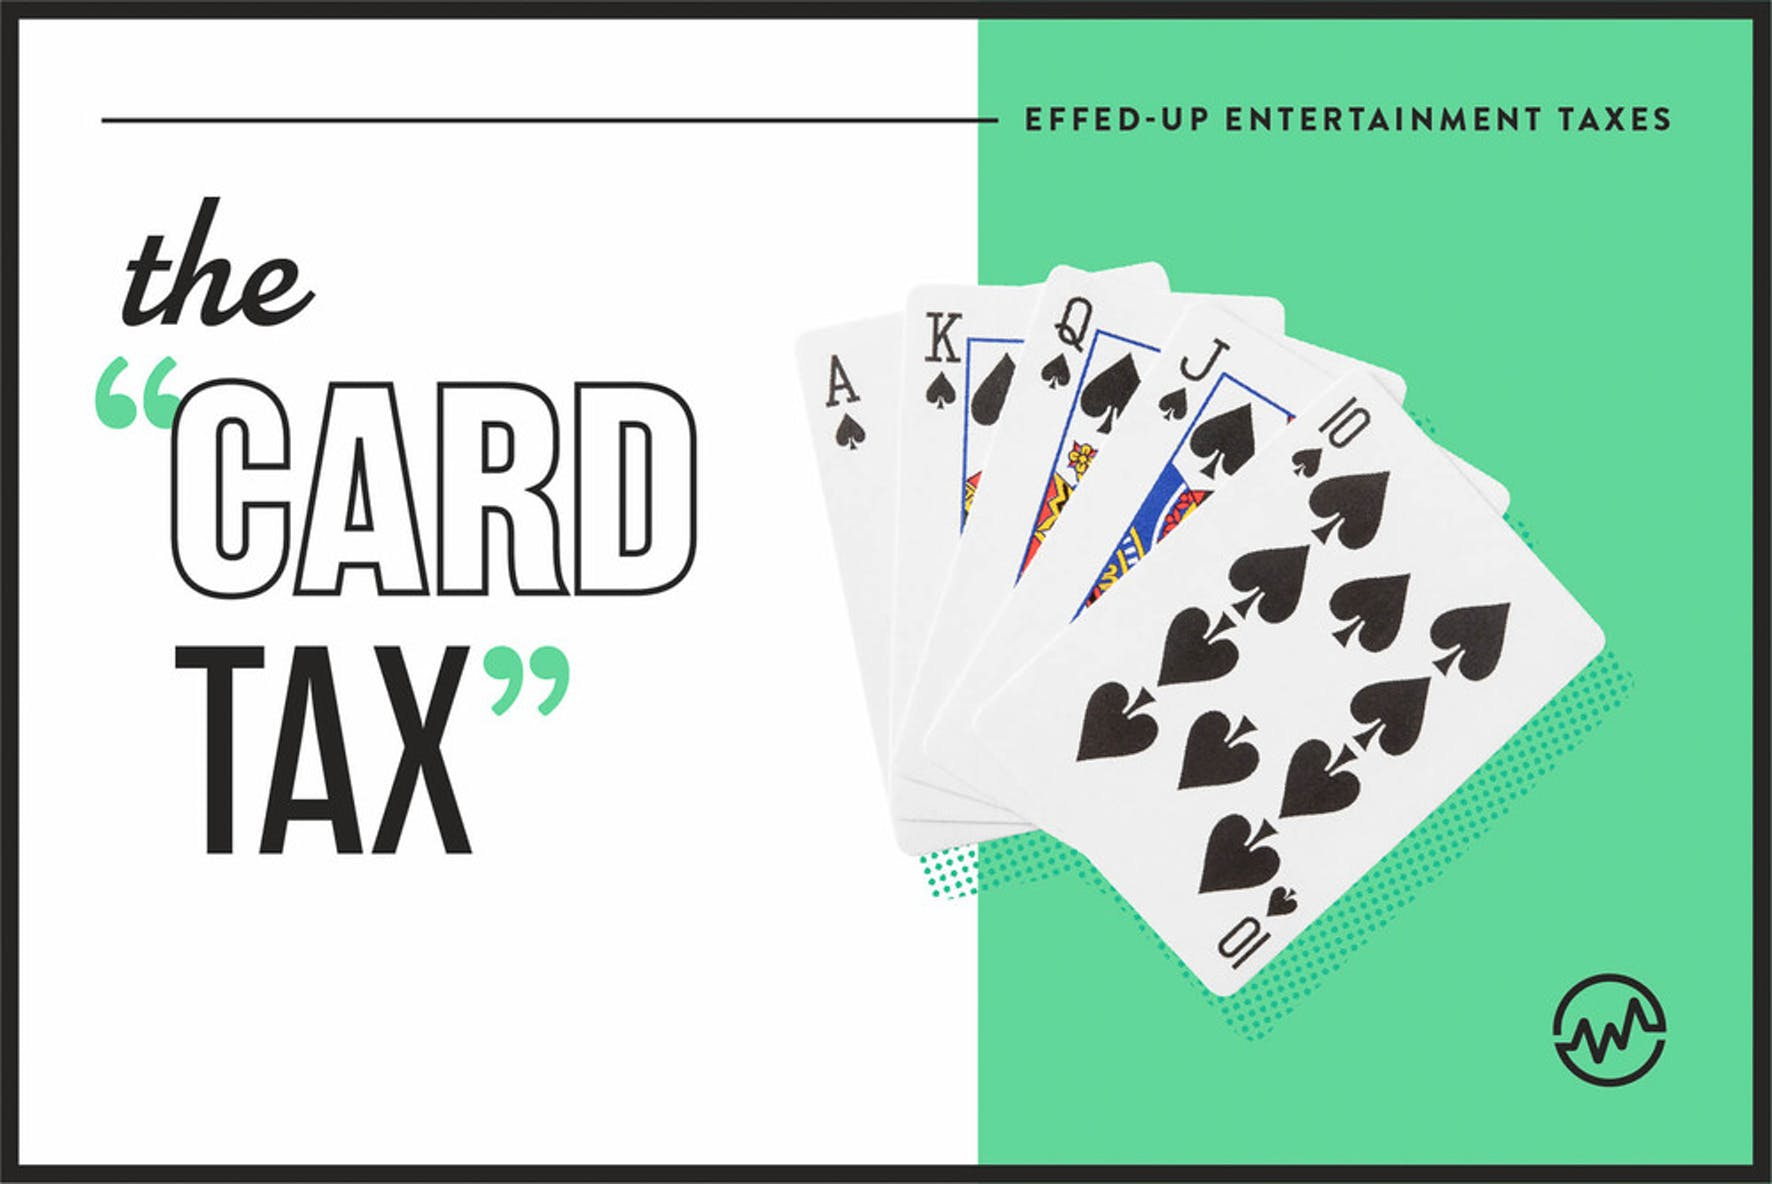 crazy entertainment taxes - the card tax